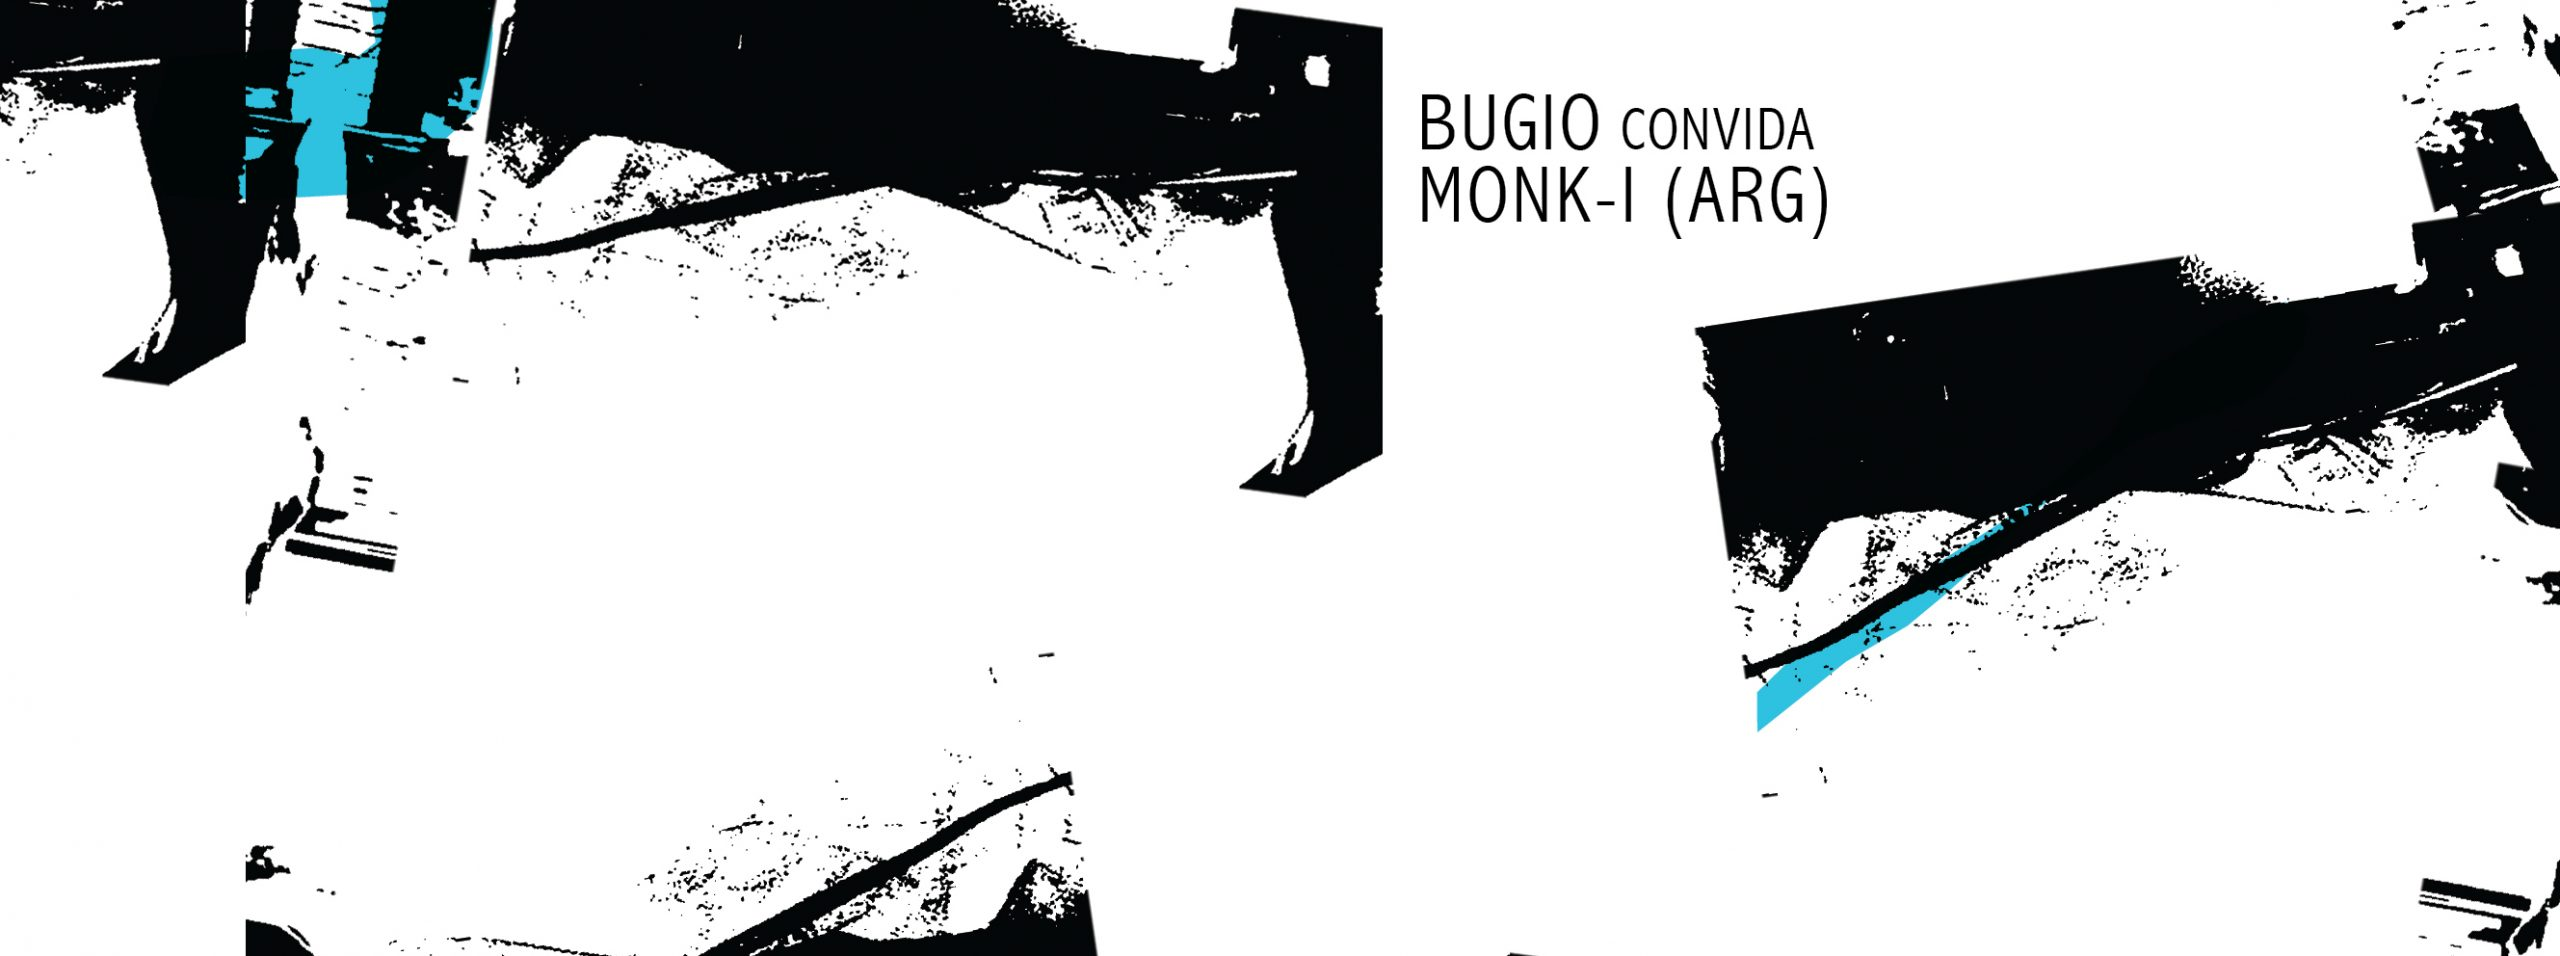 Bugio convida Monk-i, no Hotel Bar /SP